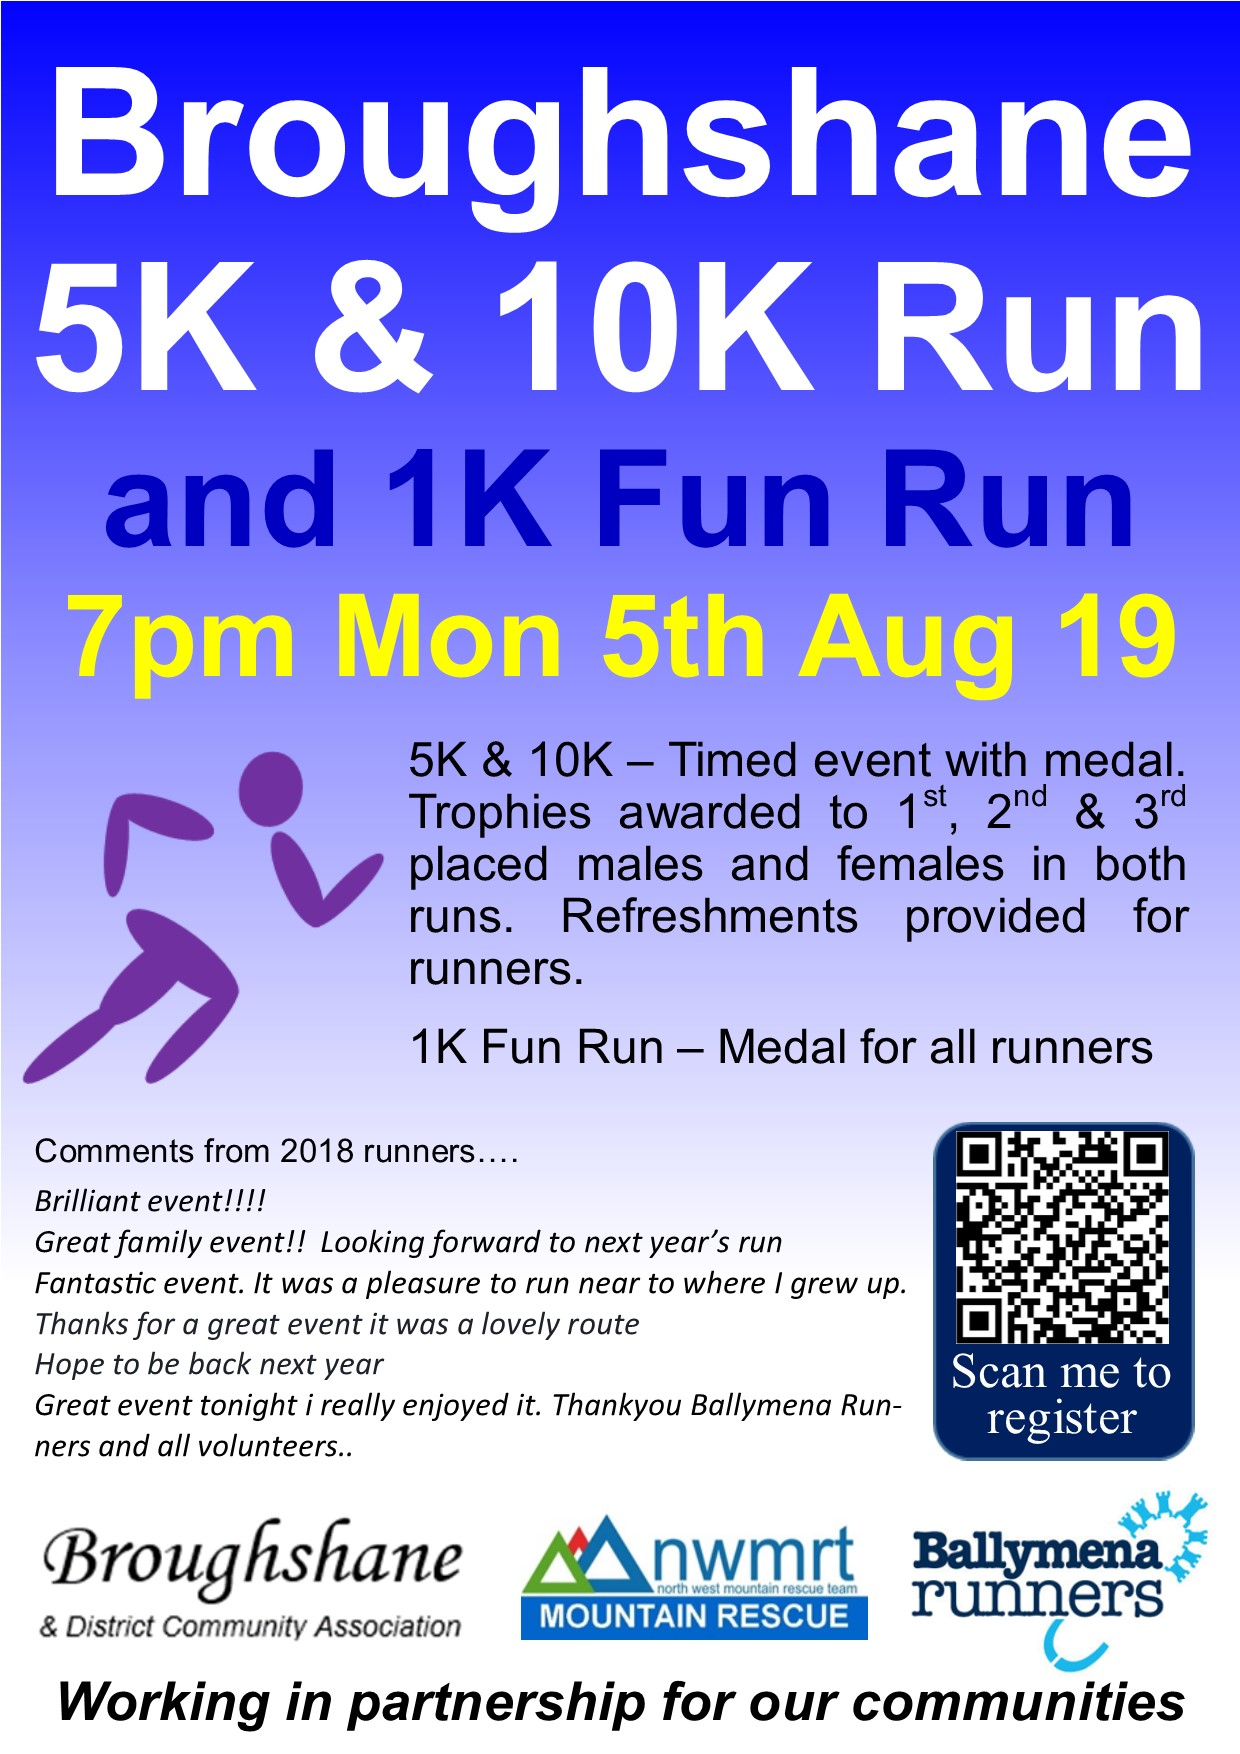 Broughshane 5k and 10k